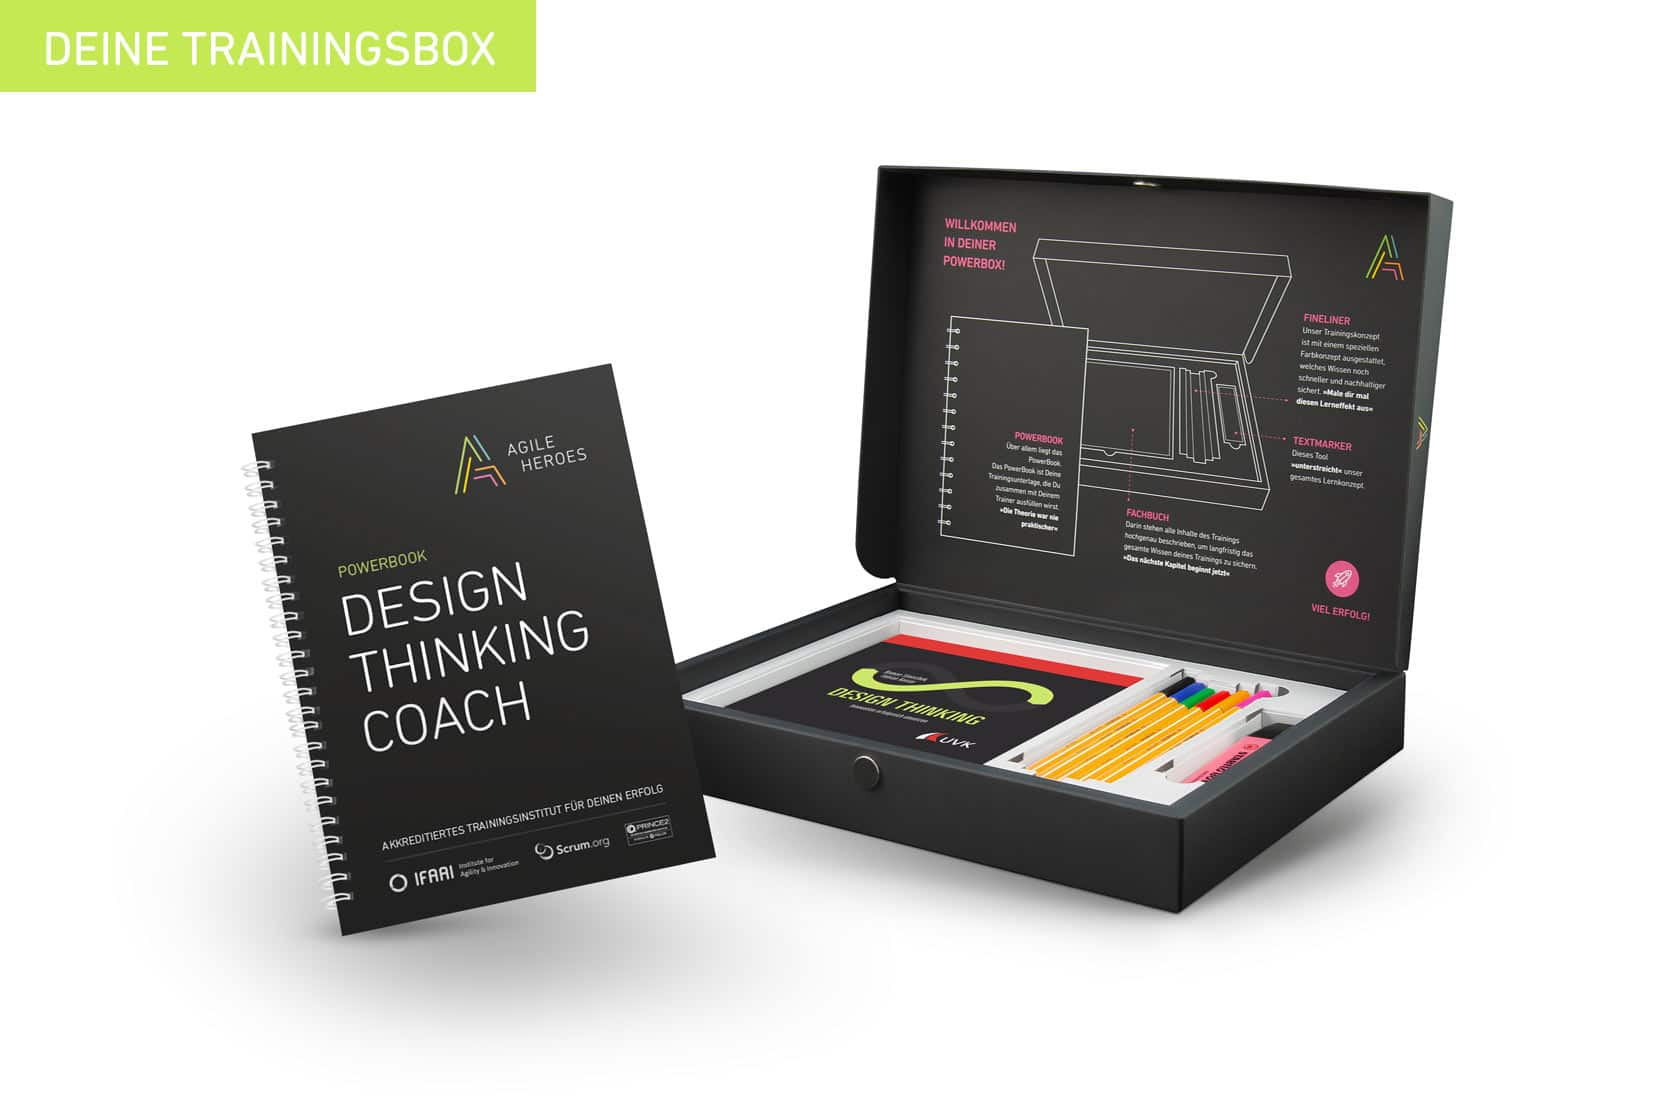 agile-heroes-design-thinking-coach-powerbox